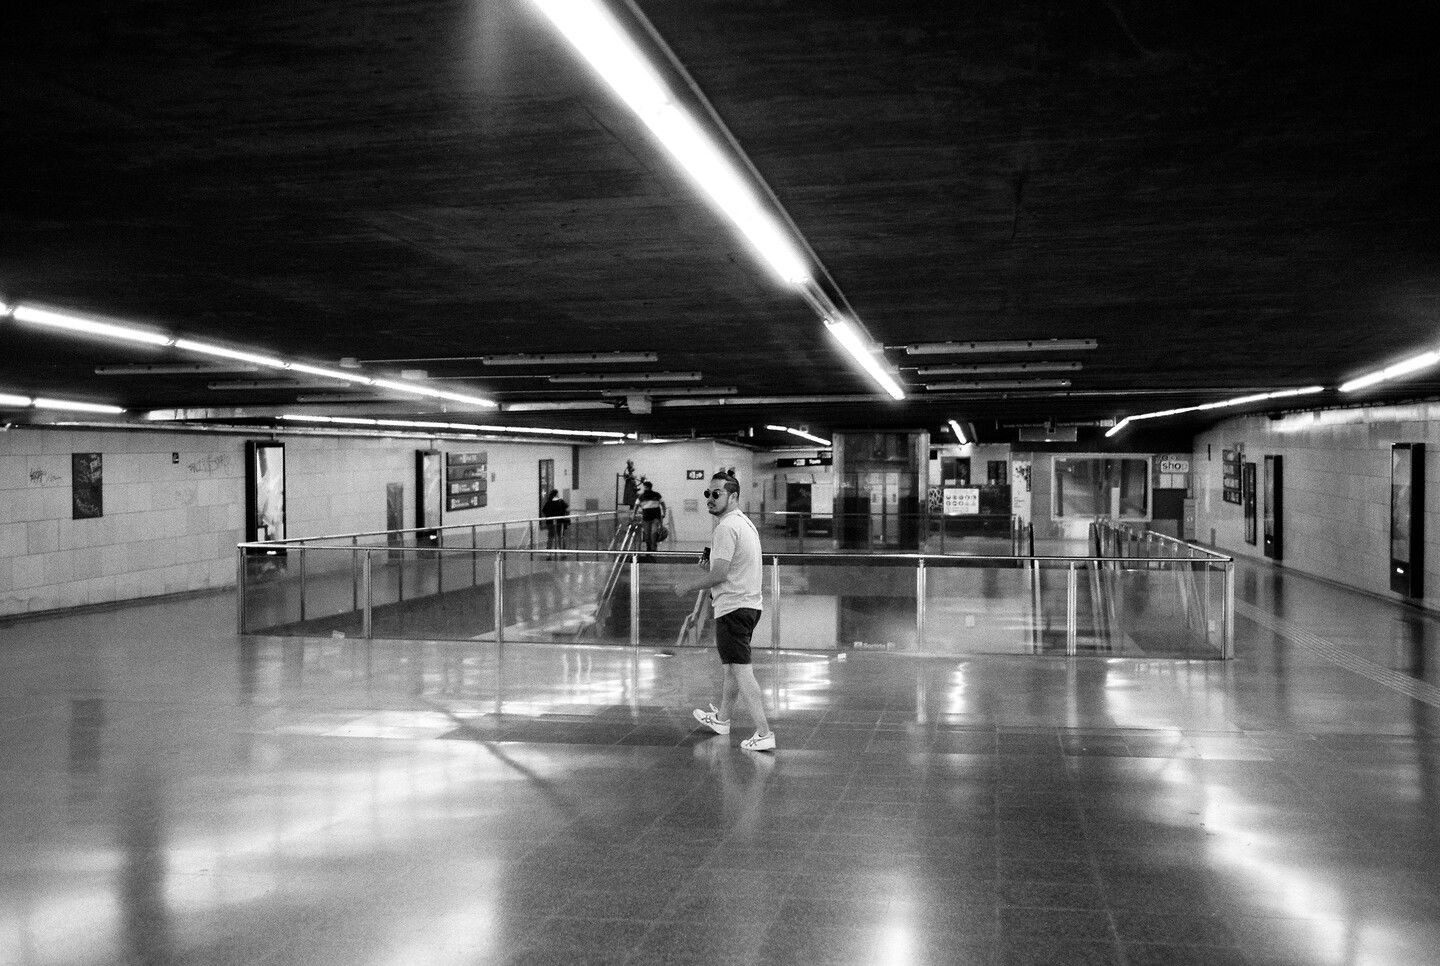 Sep 22, 2019 - Barcelona in Black and White: 13